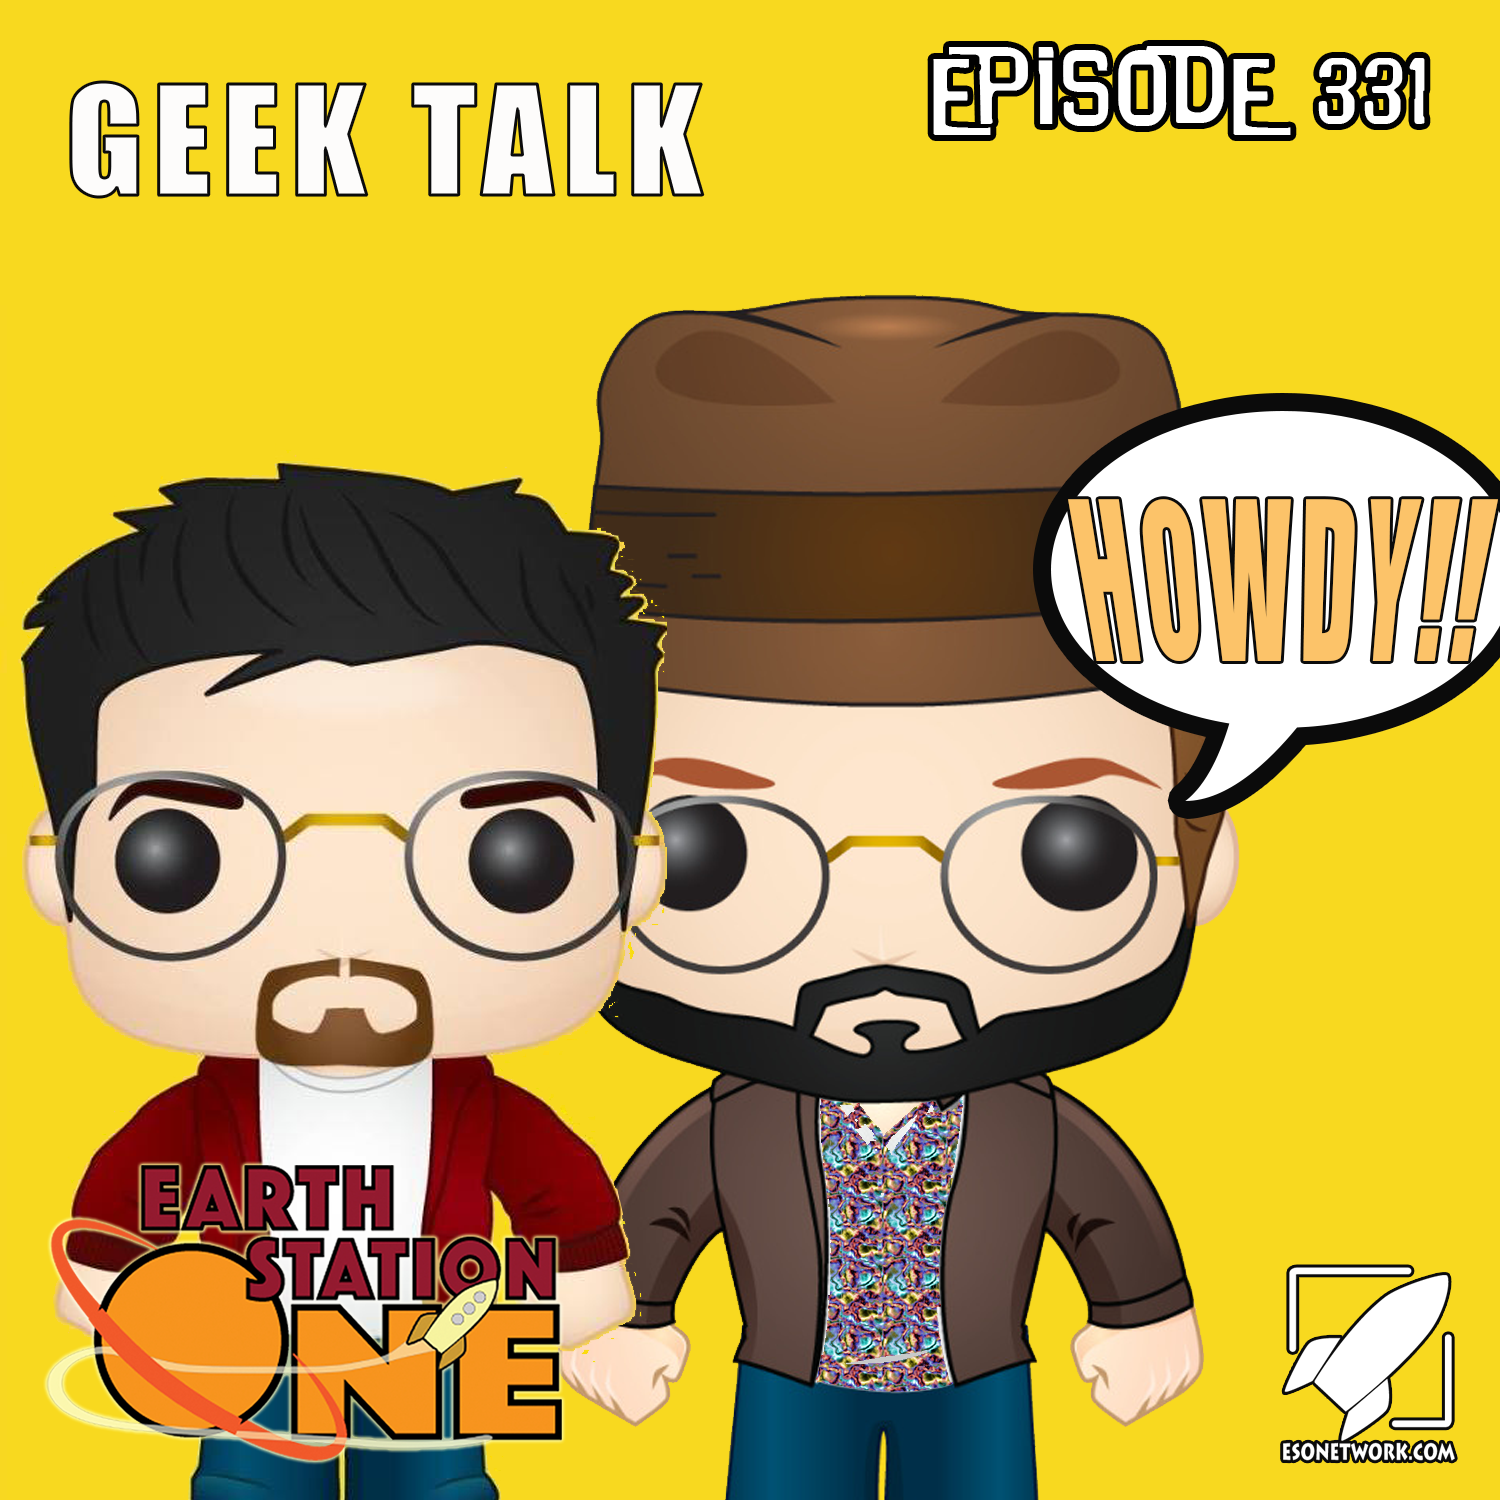 Earth Station One Podcast Ep 331